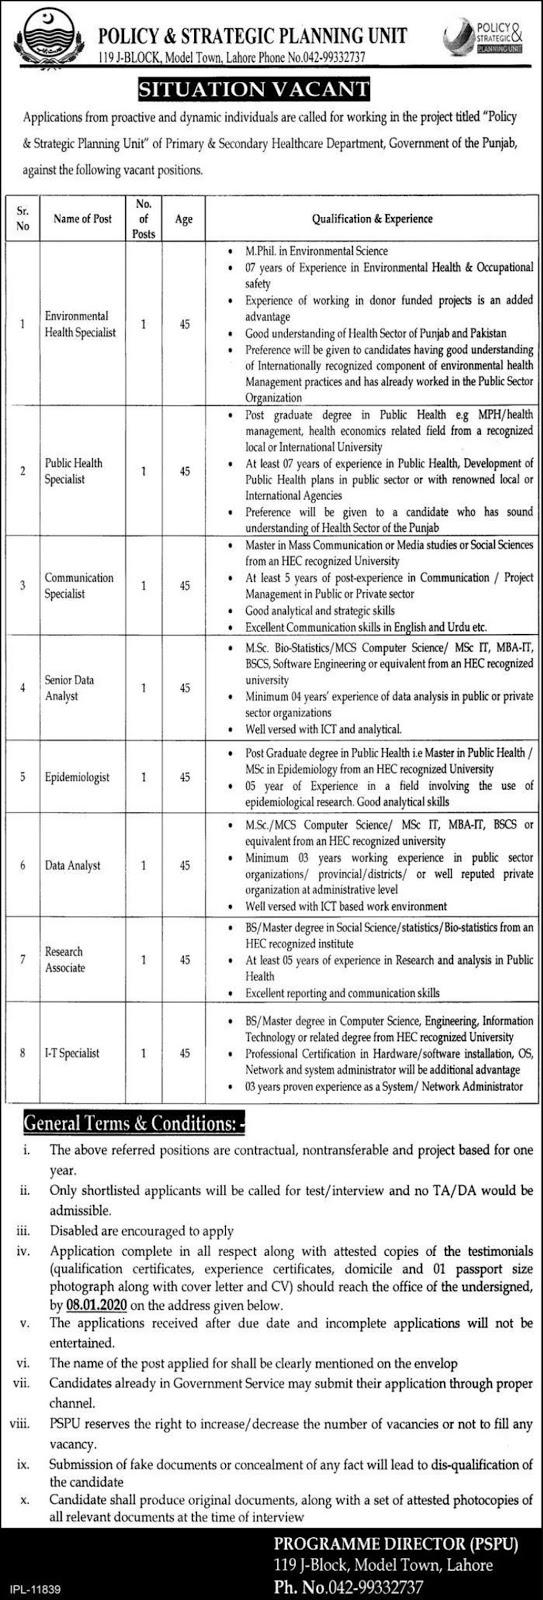 Policy & Strategic Planning Unit Punjab Jobs